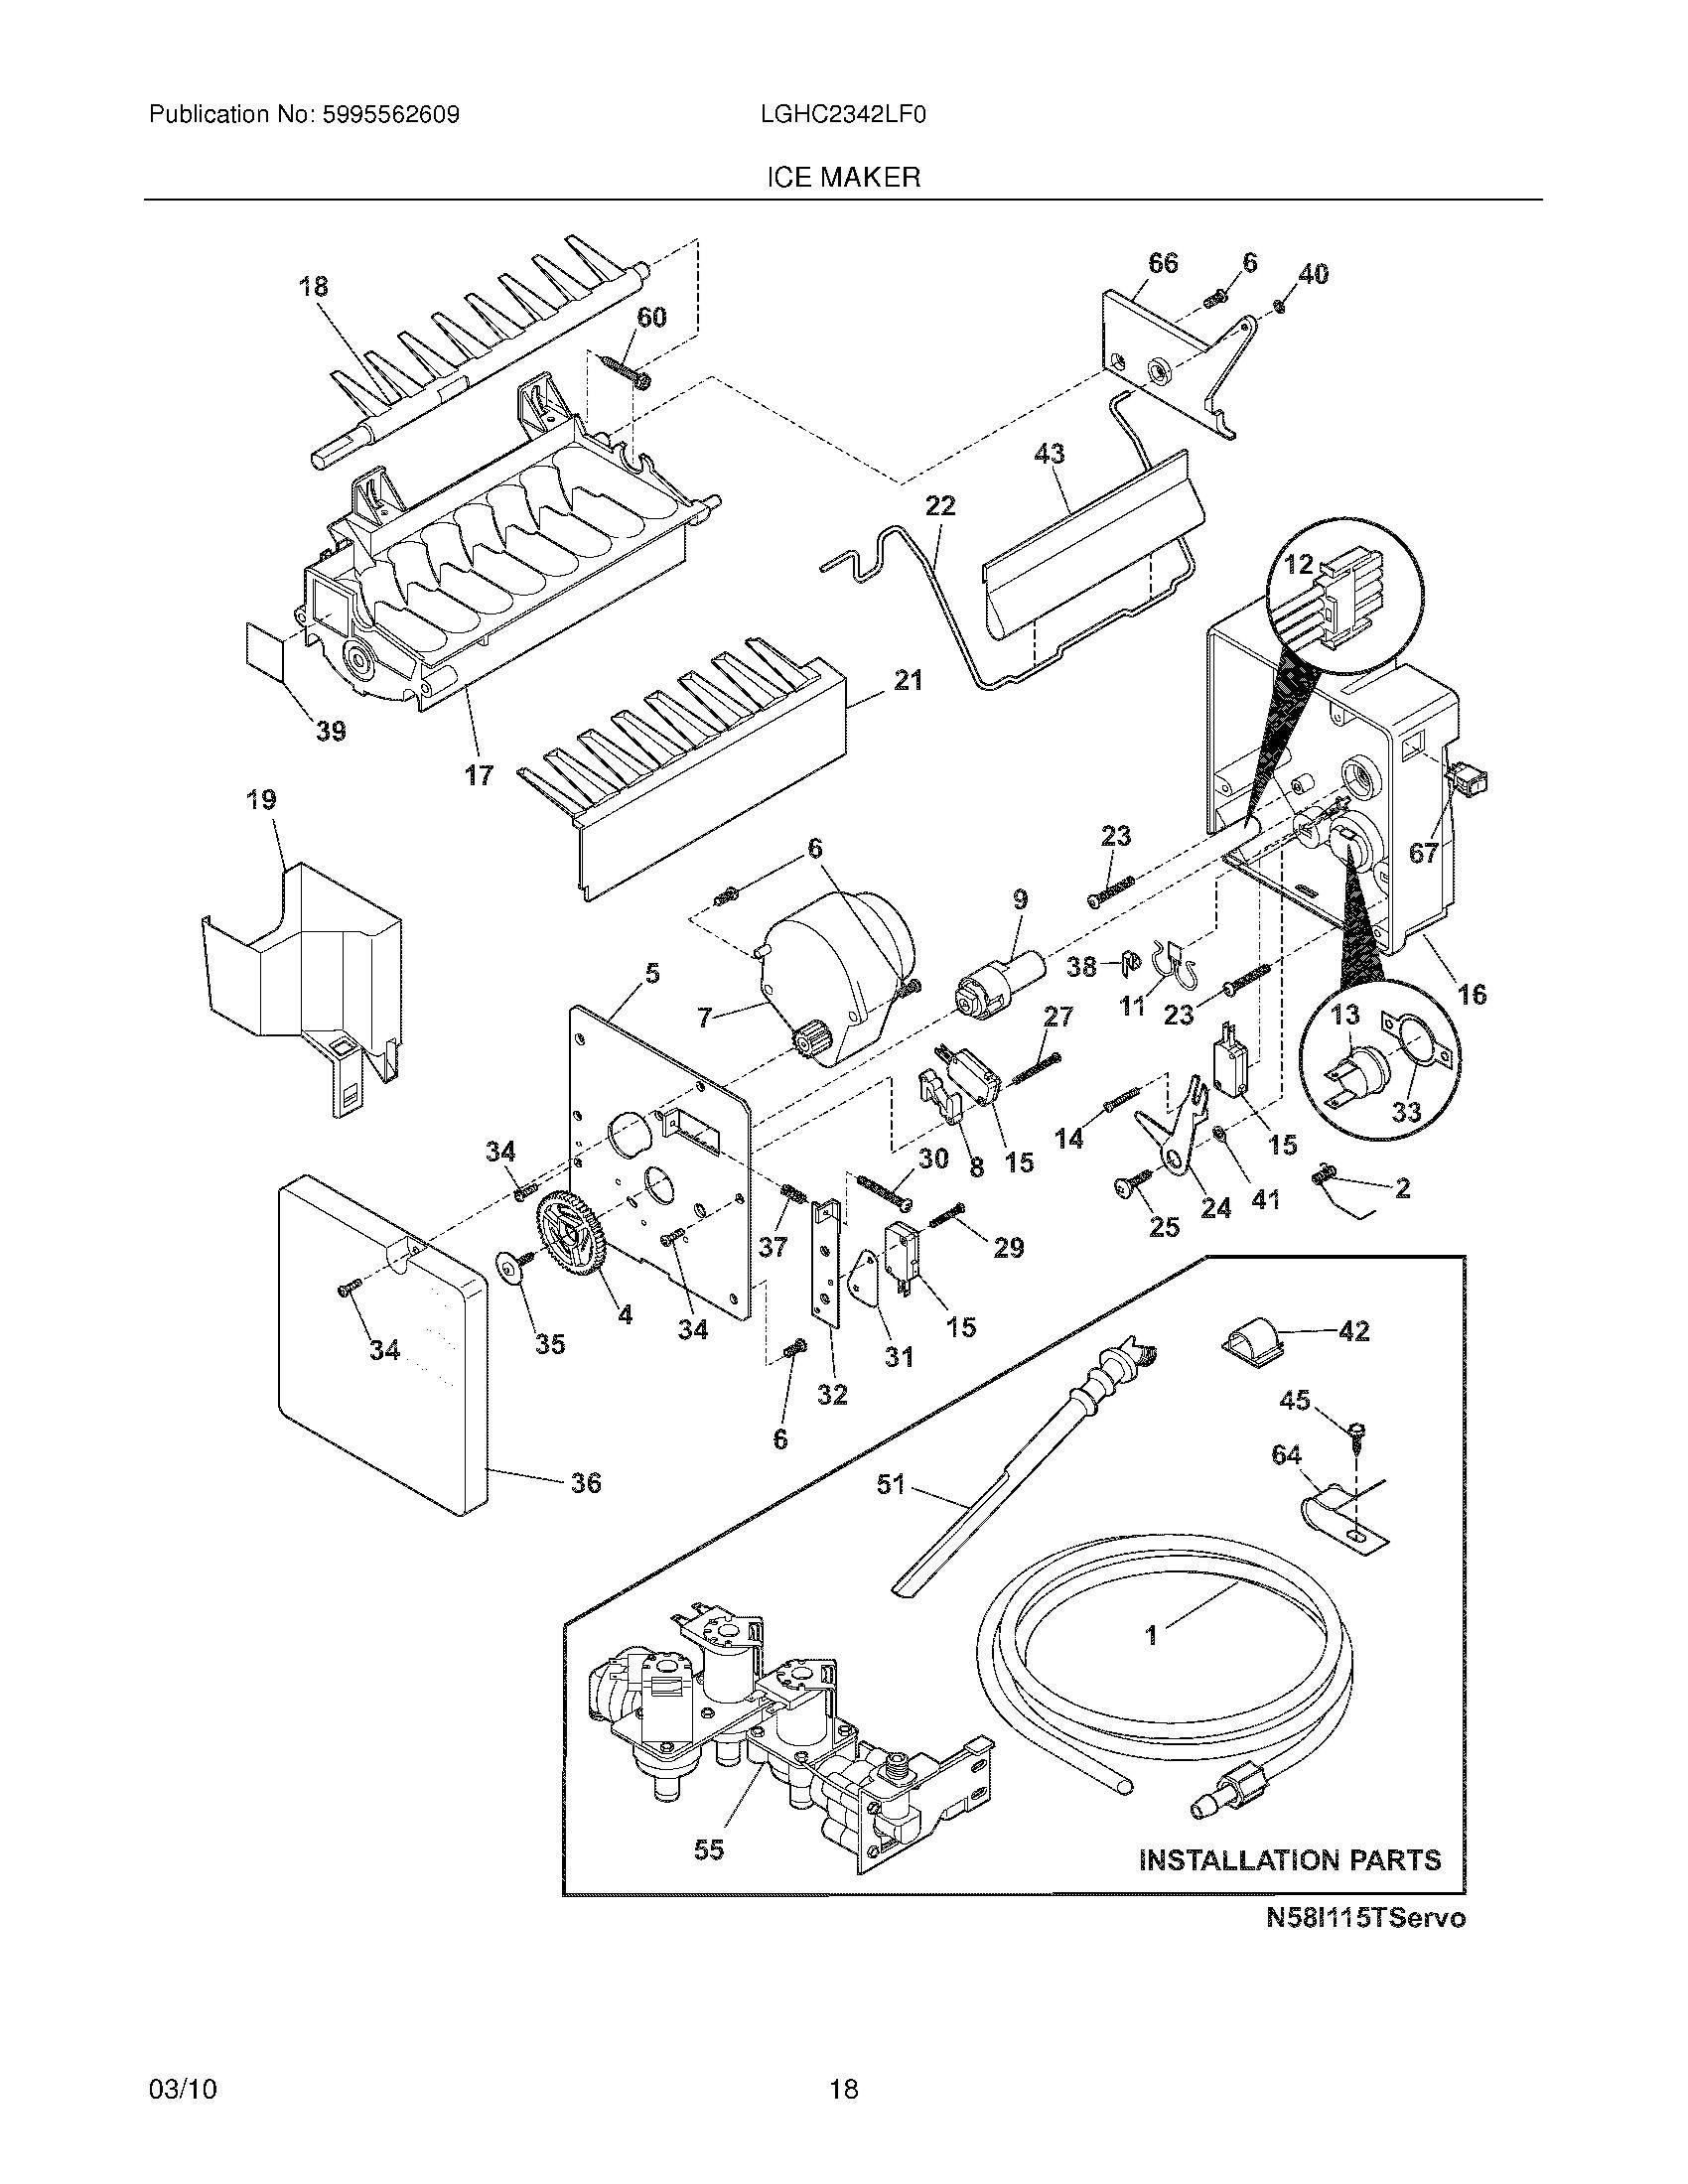 Mitsubishi Eclipse Radio Wiring Diagram Wiring Diagram - Wiring diagram honda l15a